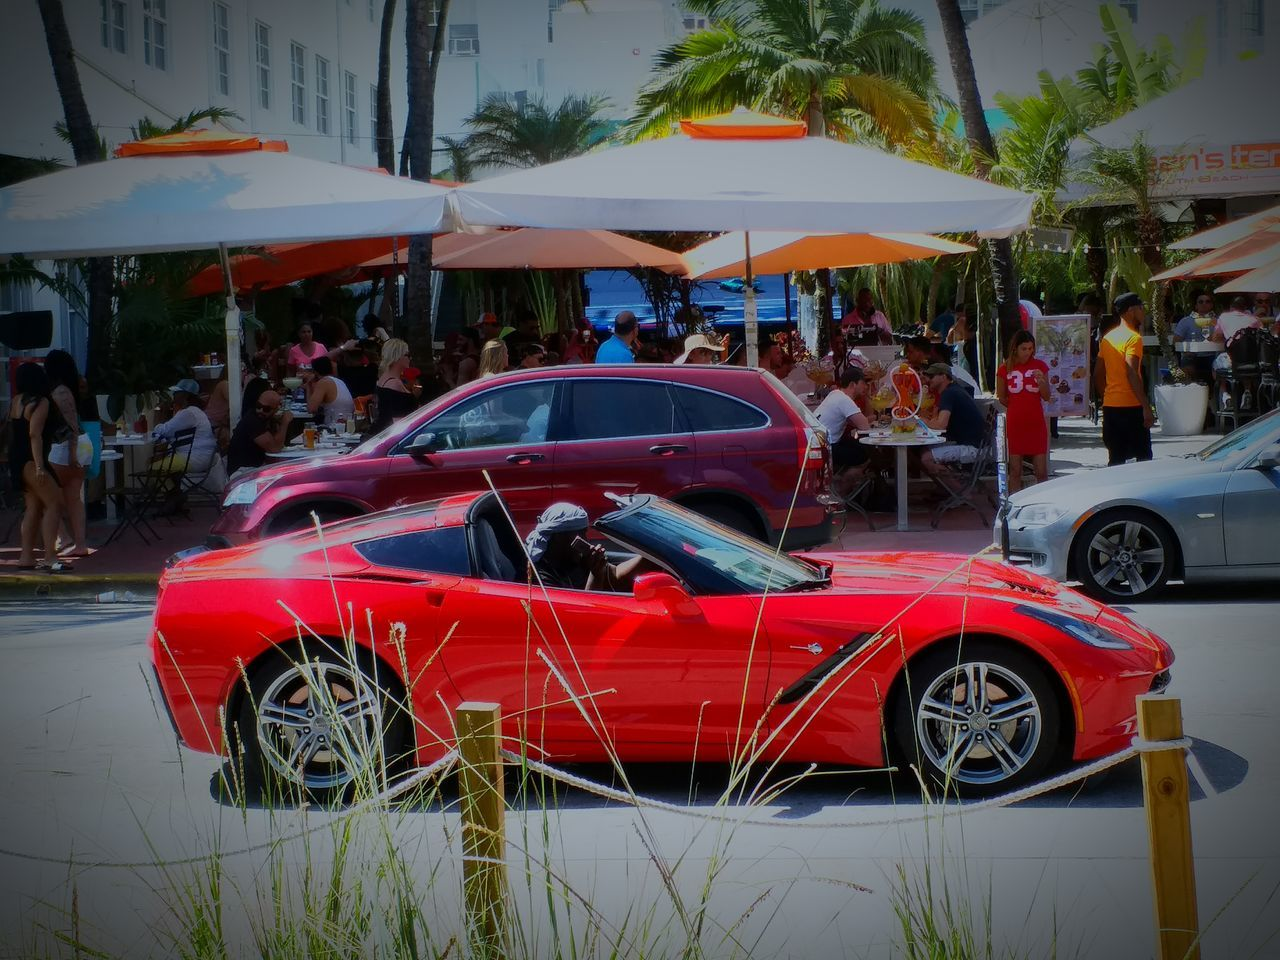 Car Land Vehicle Red Transportation Mode Of Transport Outdoors Day No People Cars EyeEmNewHere Beauty In Nature New Talent This Week Indianphotography Large Group Of People Best EyeEm Shot Nature Photography New Talents Best Of EyeEm Travel Destinations Chooseoftheday Red Rocks  miamiphotographer #miamiflorida #miamifashion #miaminights #miamiliving #miamistyle #miamibound #miamibeach #miamilife #brickell #wynwood #coralgables #sobe #igersmiami #ilovemiami #illgrammers #ig_masterpiece #incredible_shot supremeshooters photoofthe miamiphotographer #miamiflorida #miamifashion #miaminights #miamiliving #miamistyle #miamibound #miamibeach #miamilife #brickell #wynwood #coralgables #sobe #igersmiami #ilovemiami #illgrammers #ig_masterpiece #incredible_shot supremeshooters photoofthe Welcome To Black Long Goodbye